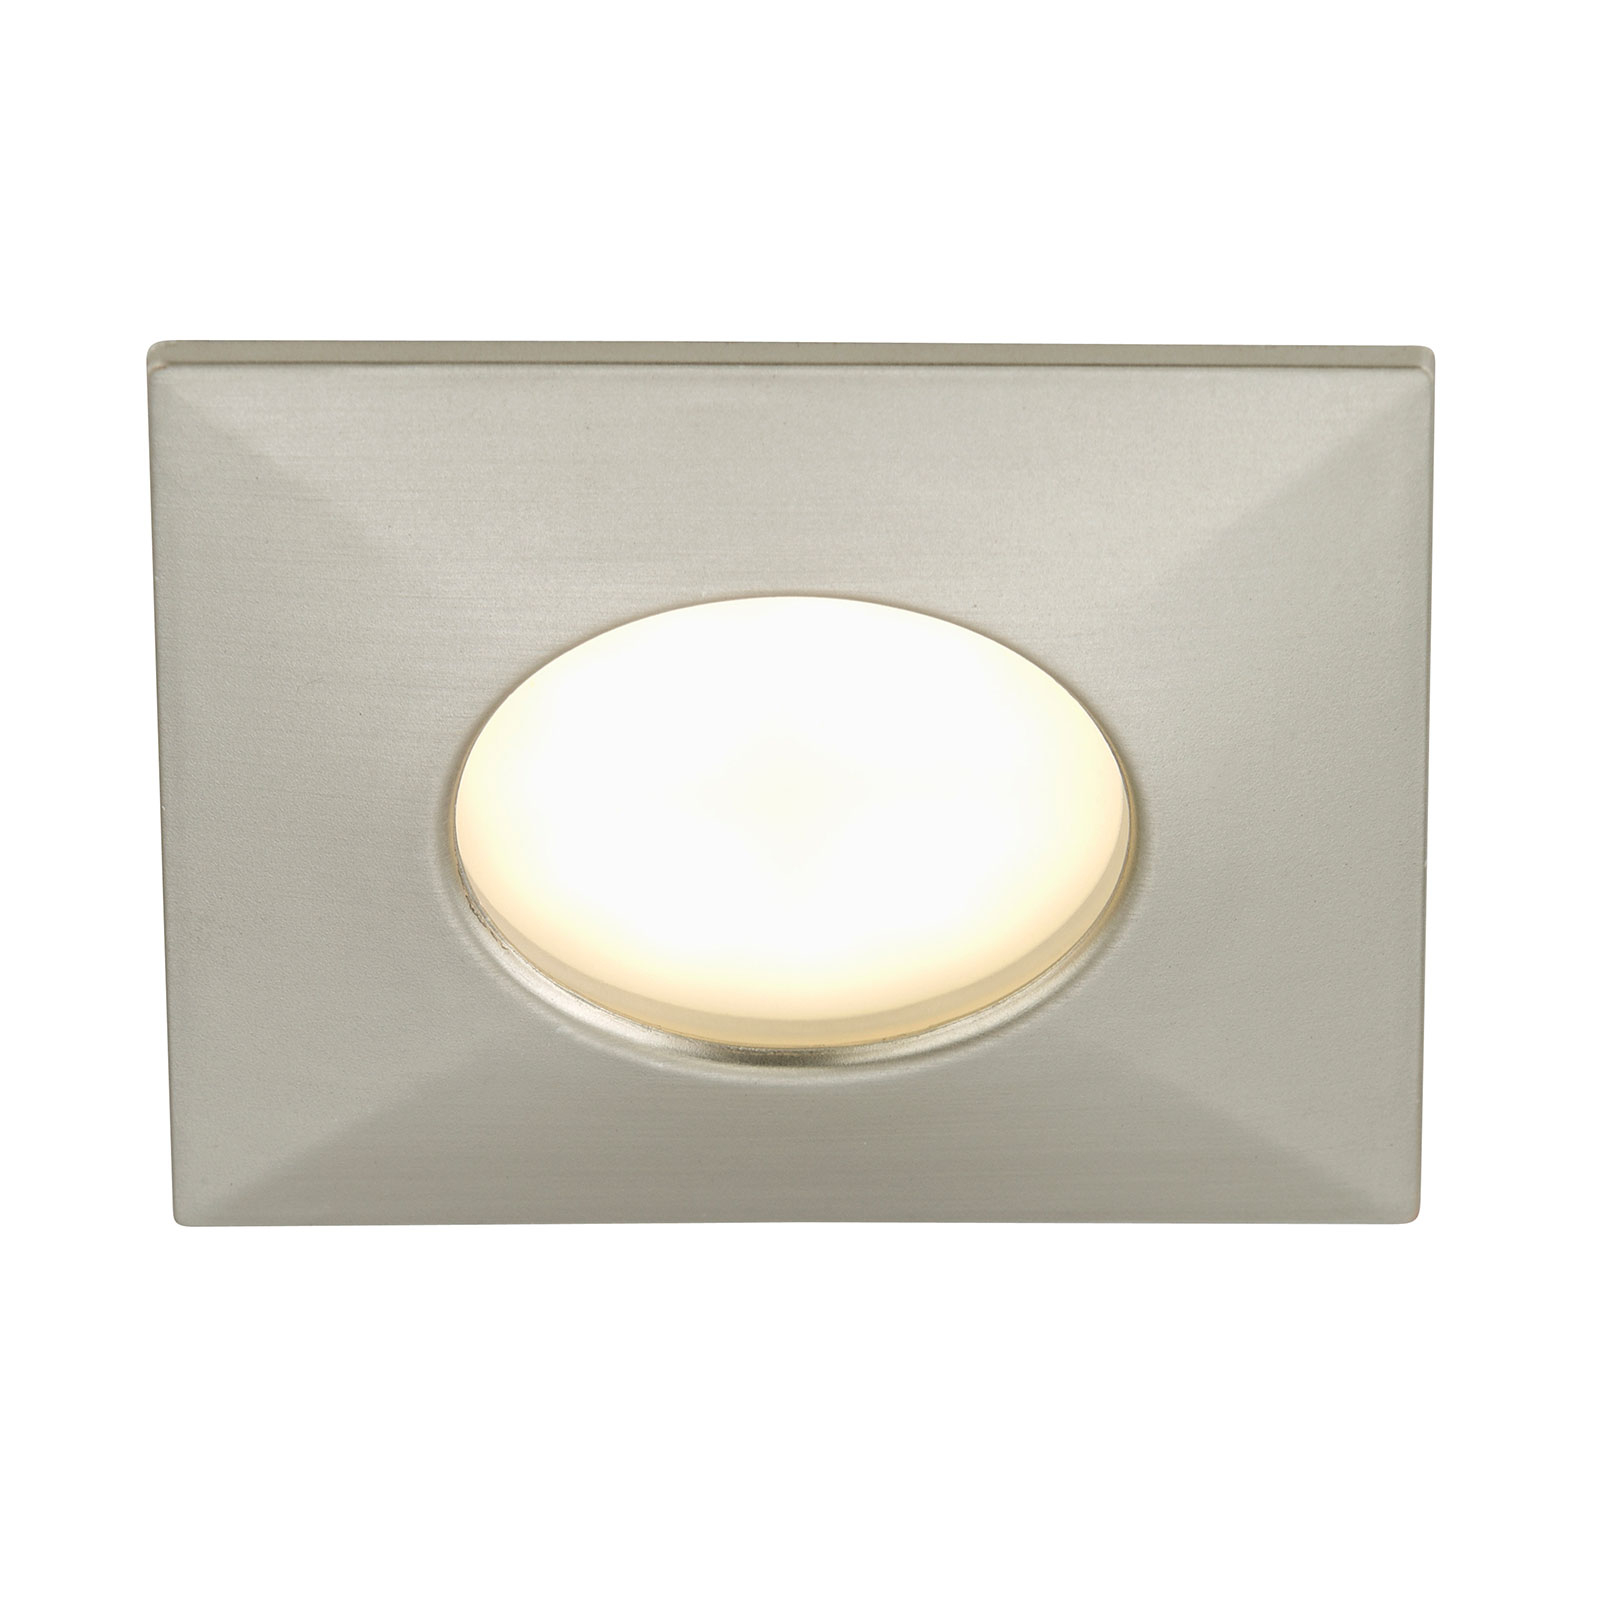 Downlight LED angolare Ben da esterni, nichel